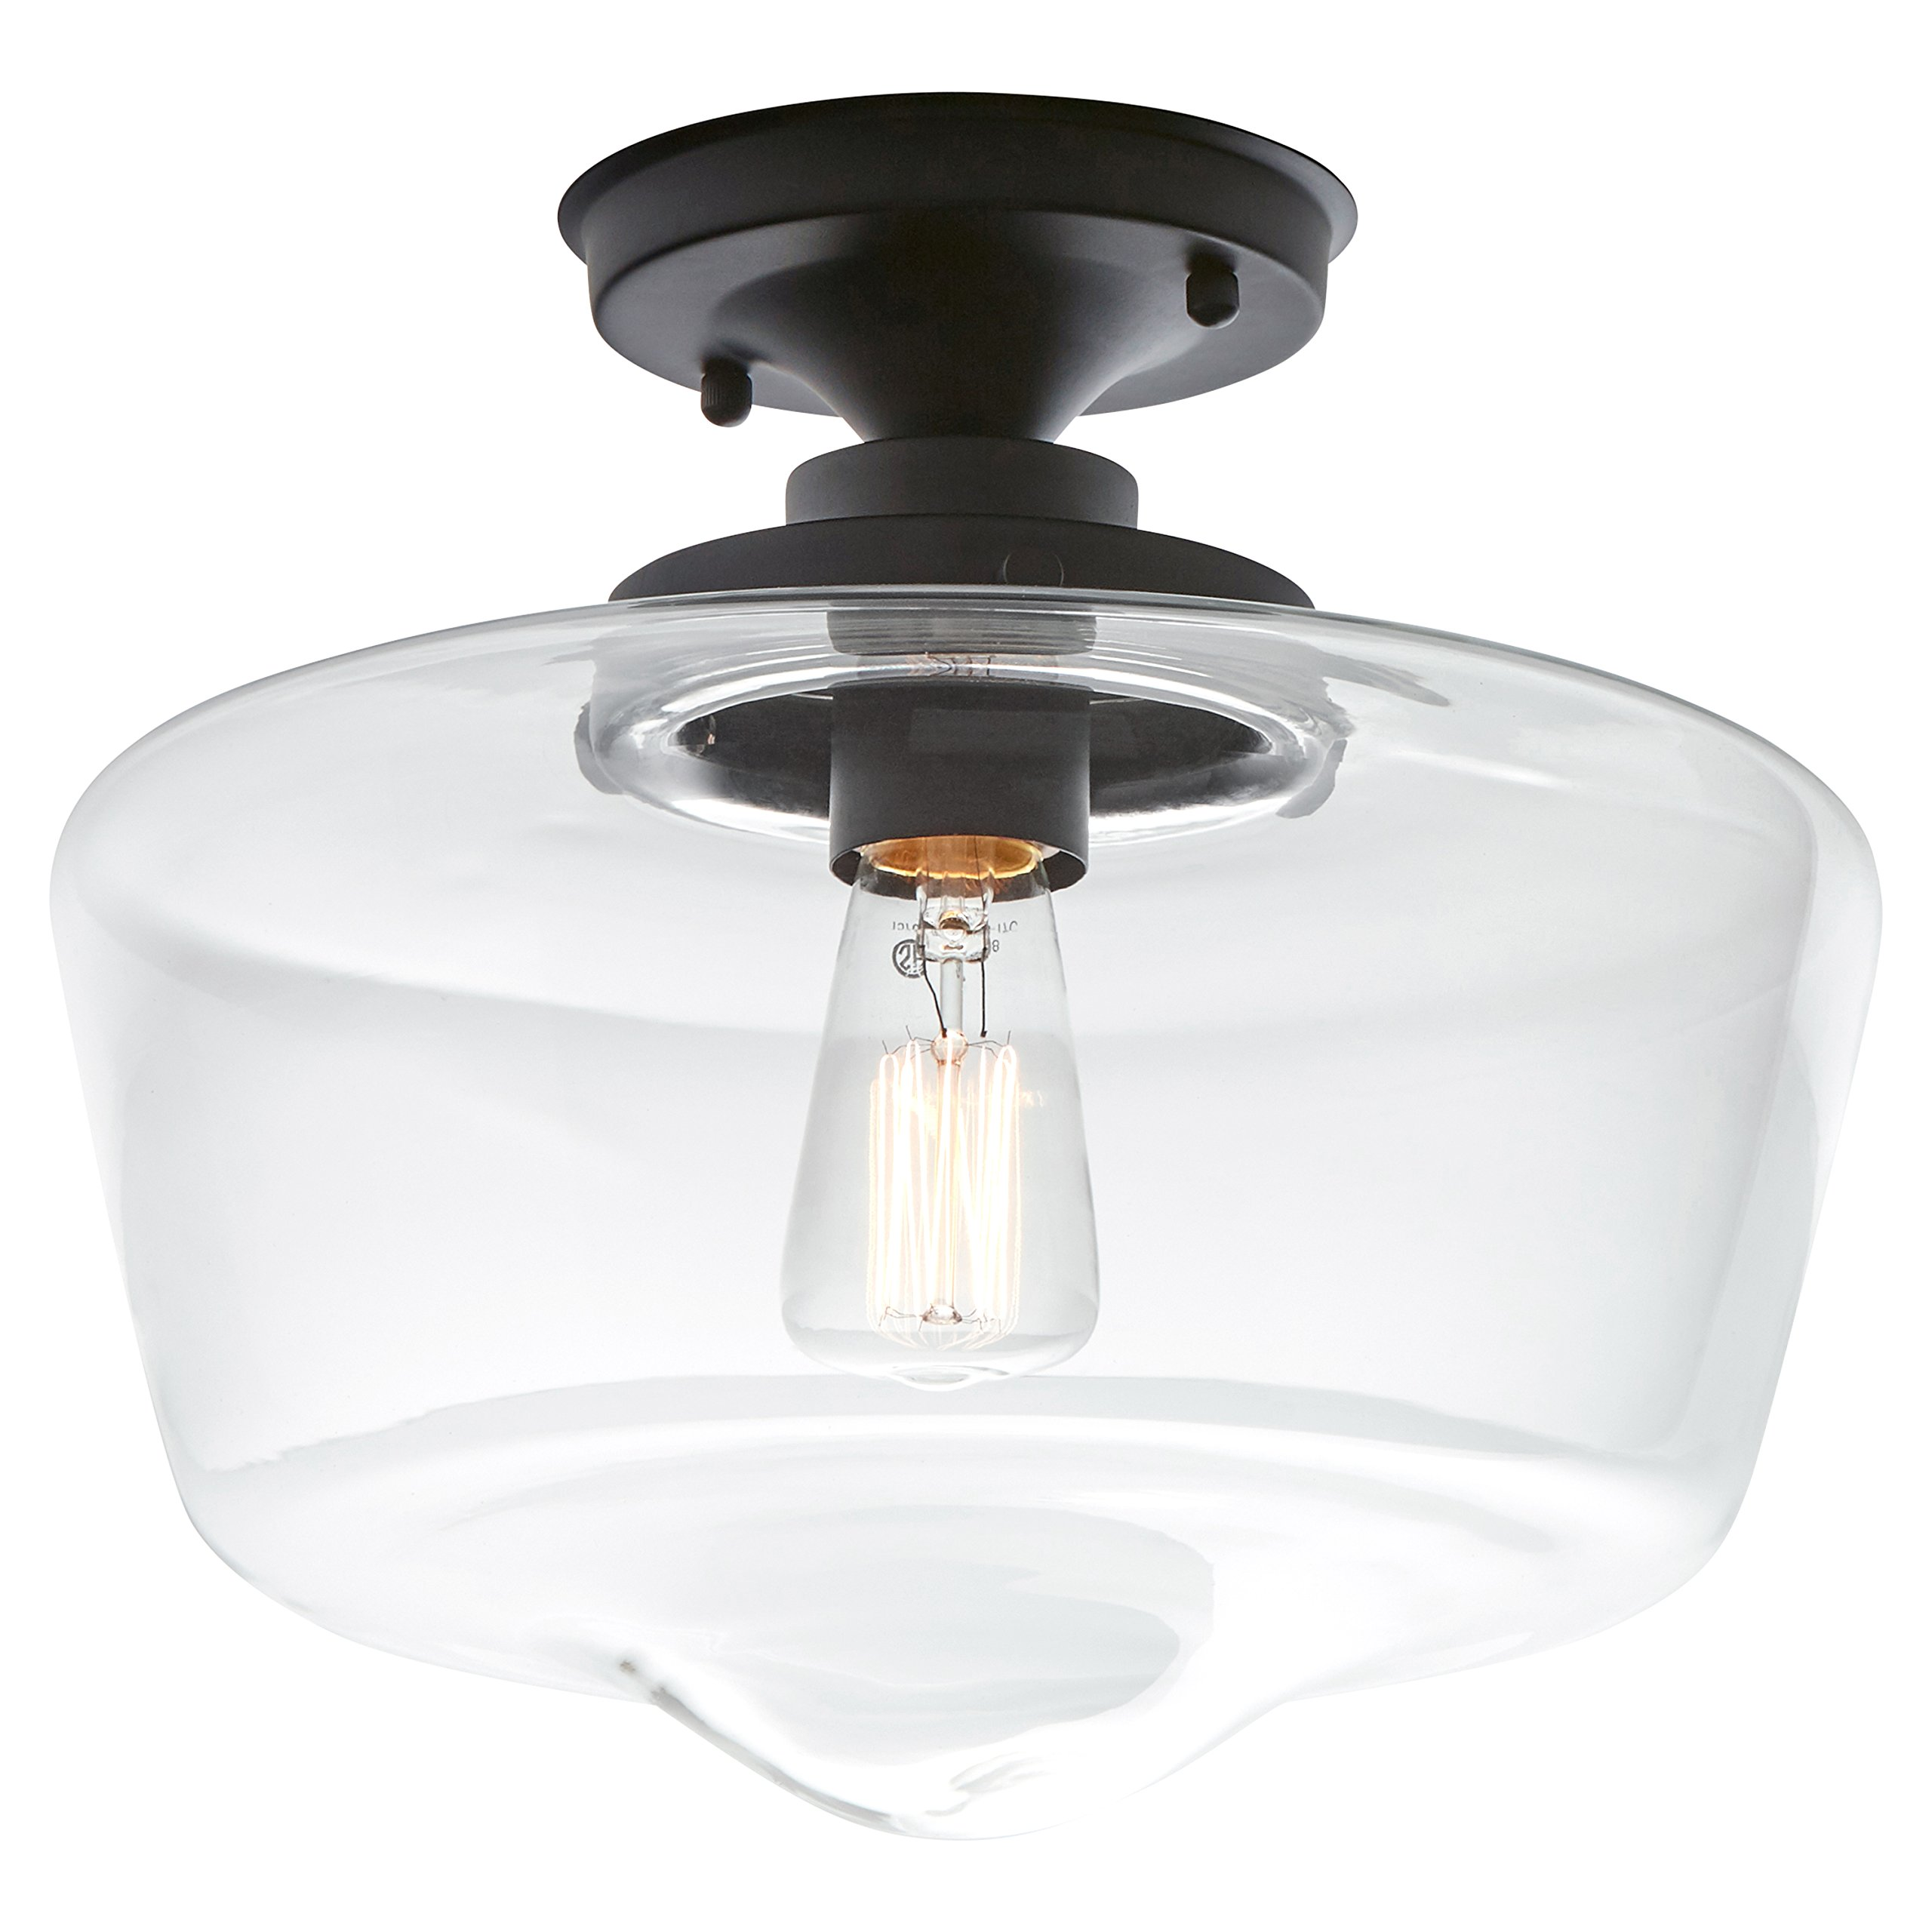 Stone & Beam Schoolhouse Semi-Flush Mount Ceiling Light, 10.5''H, With Bulb, Matte Black with Glass Shade